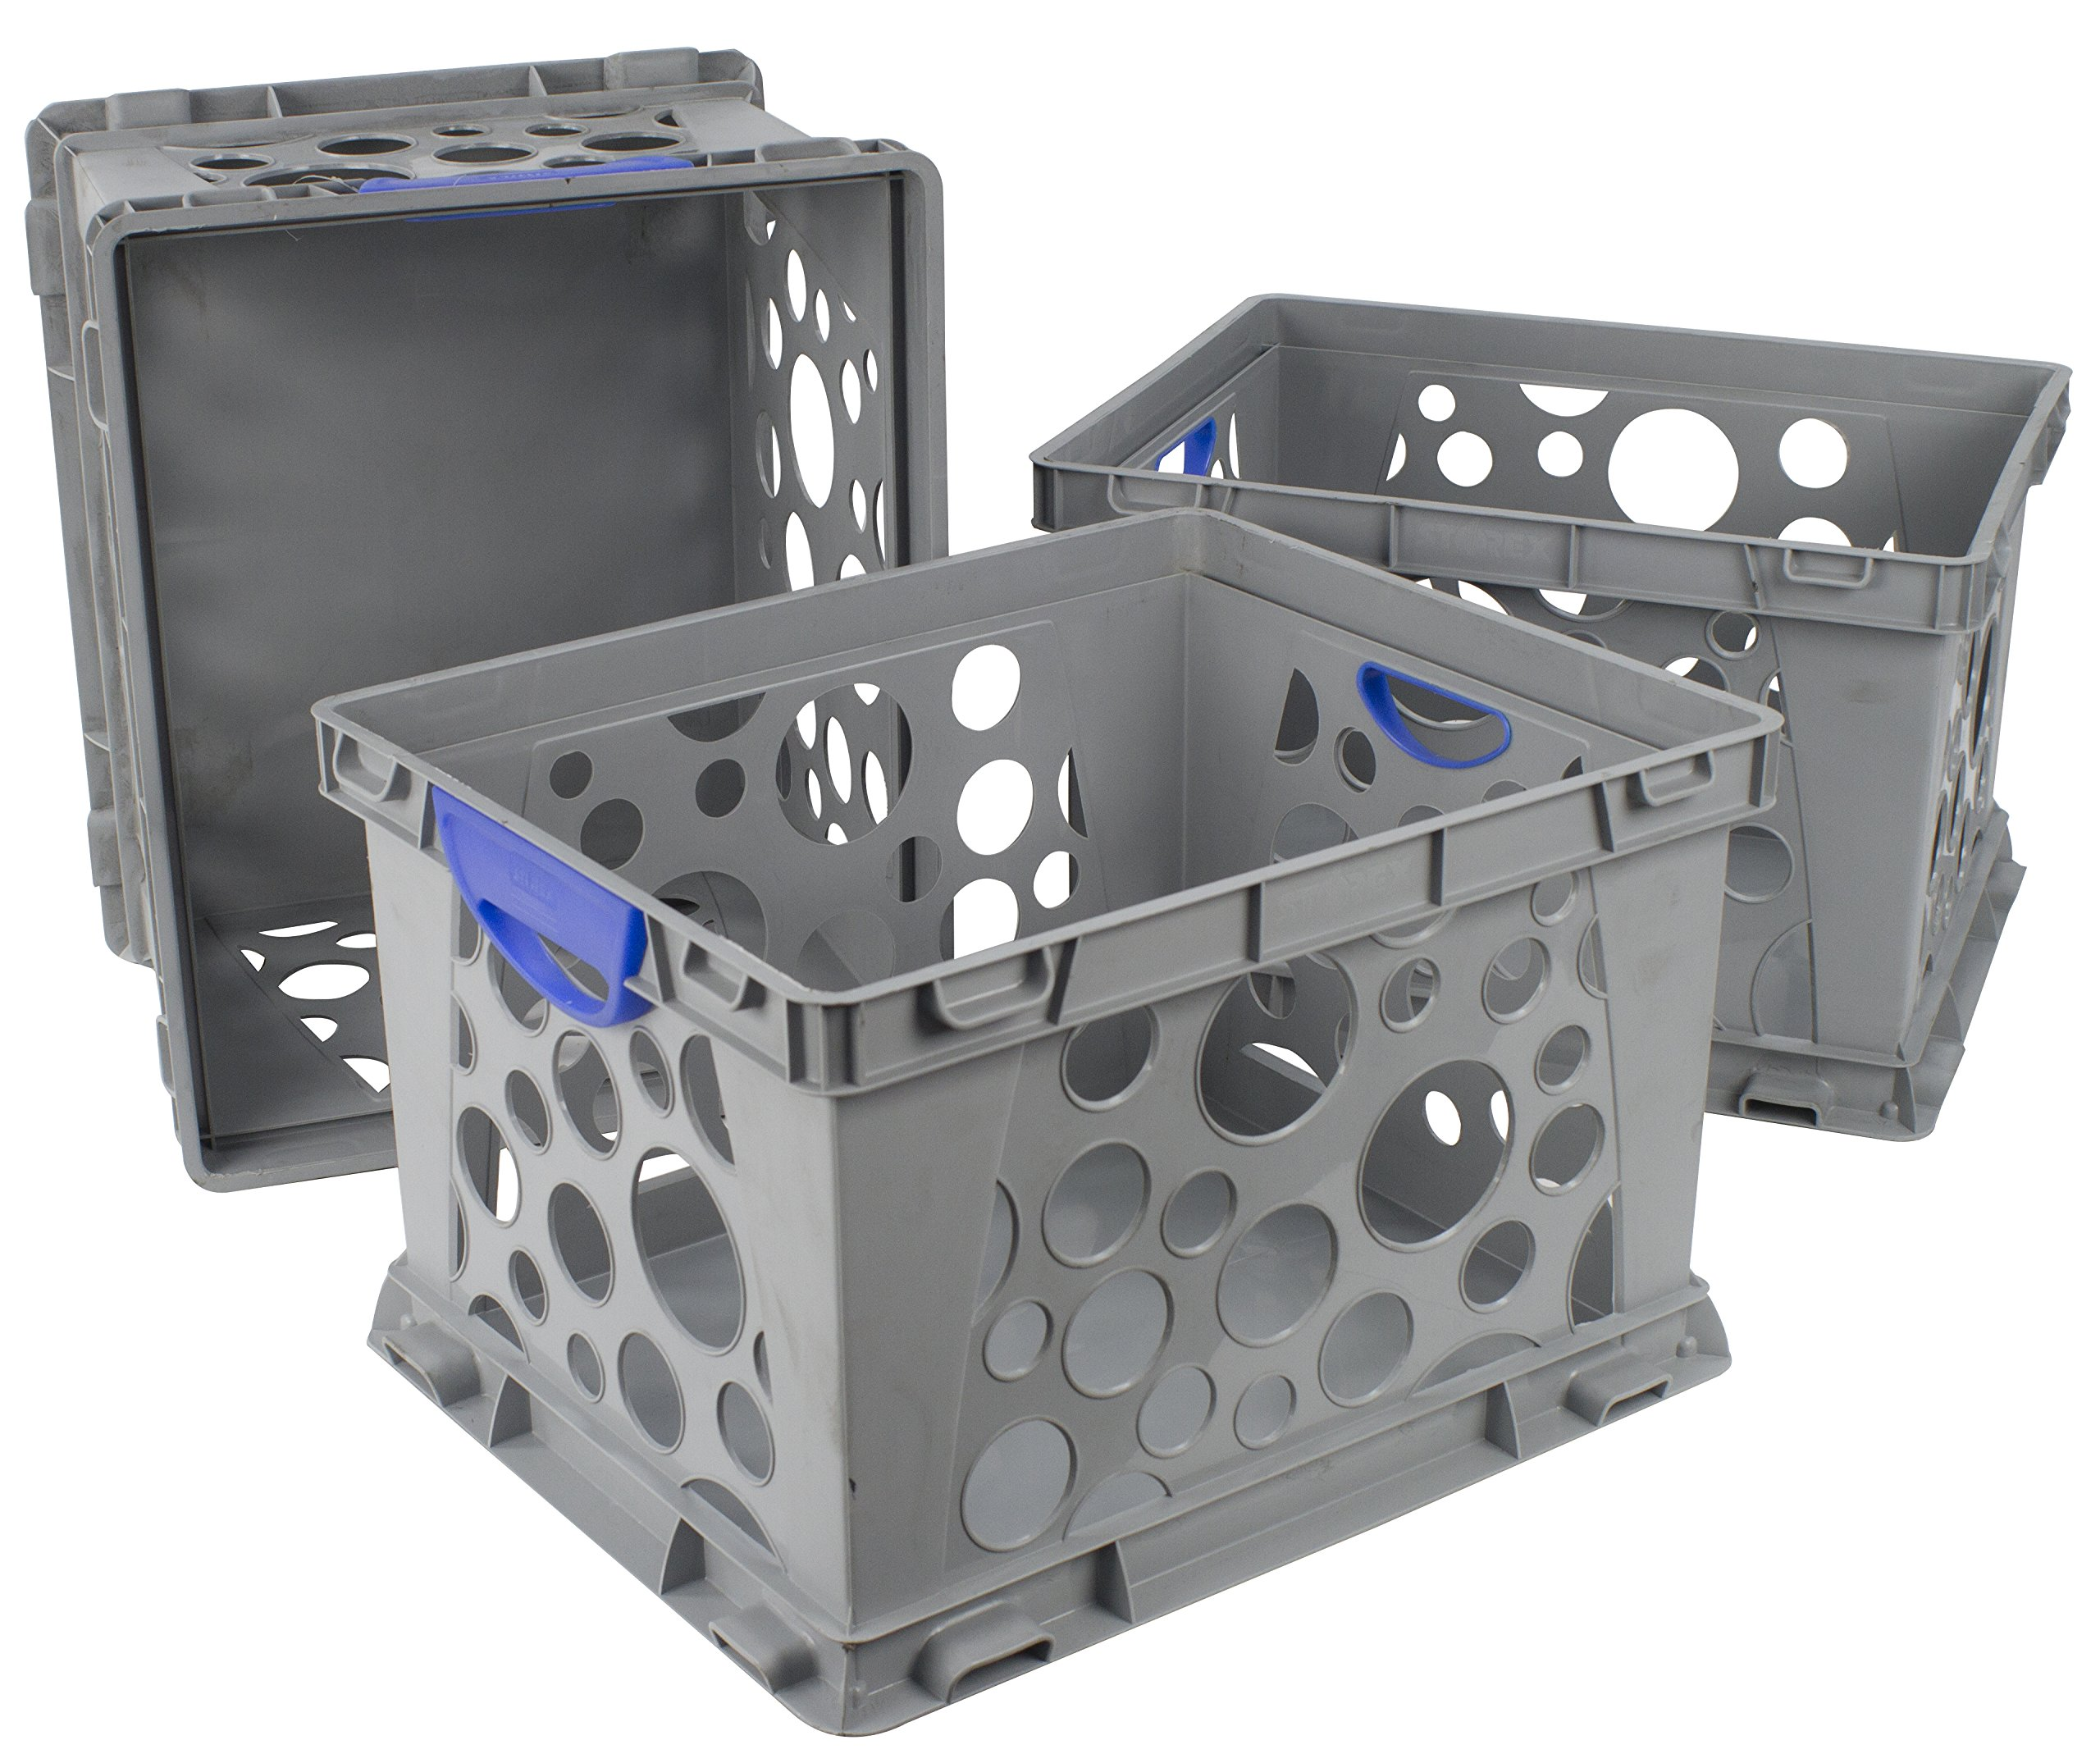 Storex Recycled Filing Crate with Comfort Handles, 17.25 x 14.25 x 10.5 Inches, Blue, Case of 3 (STX61791U03C)